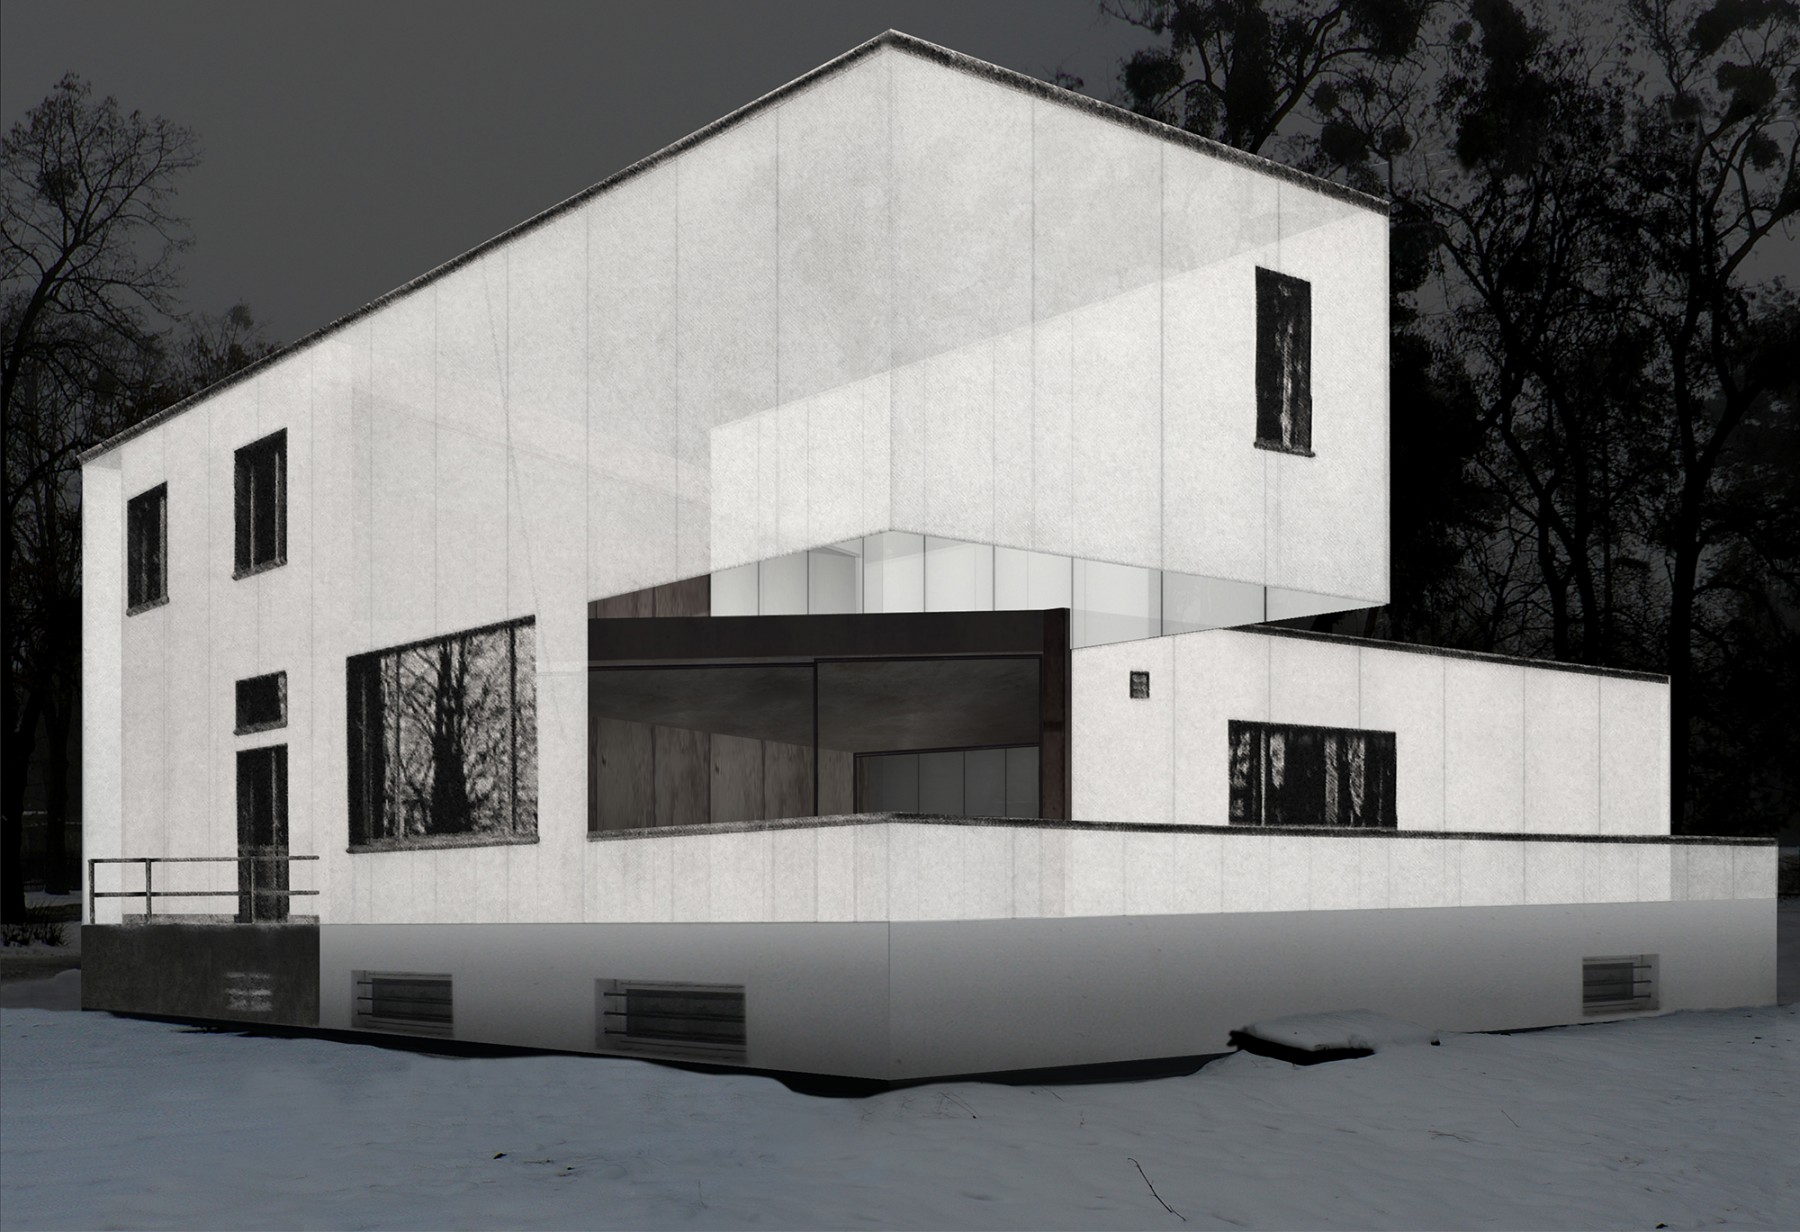 Walter-Gropius-Moholy-Nagy-Bauhaus-Building-Masters-Houses-space-Centre-short-list-performance-competition-Jamie-Fobert-architects-4